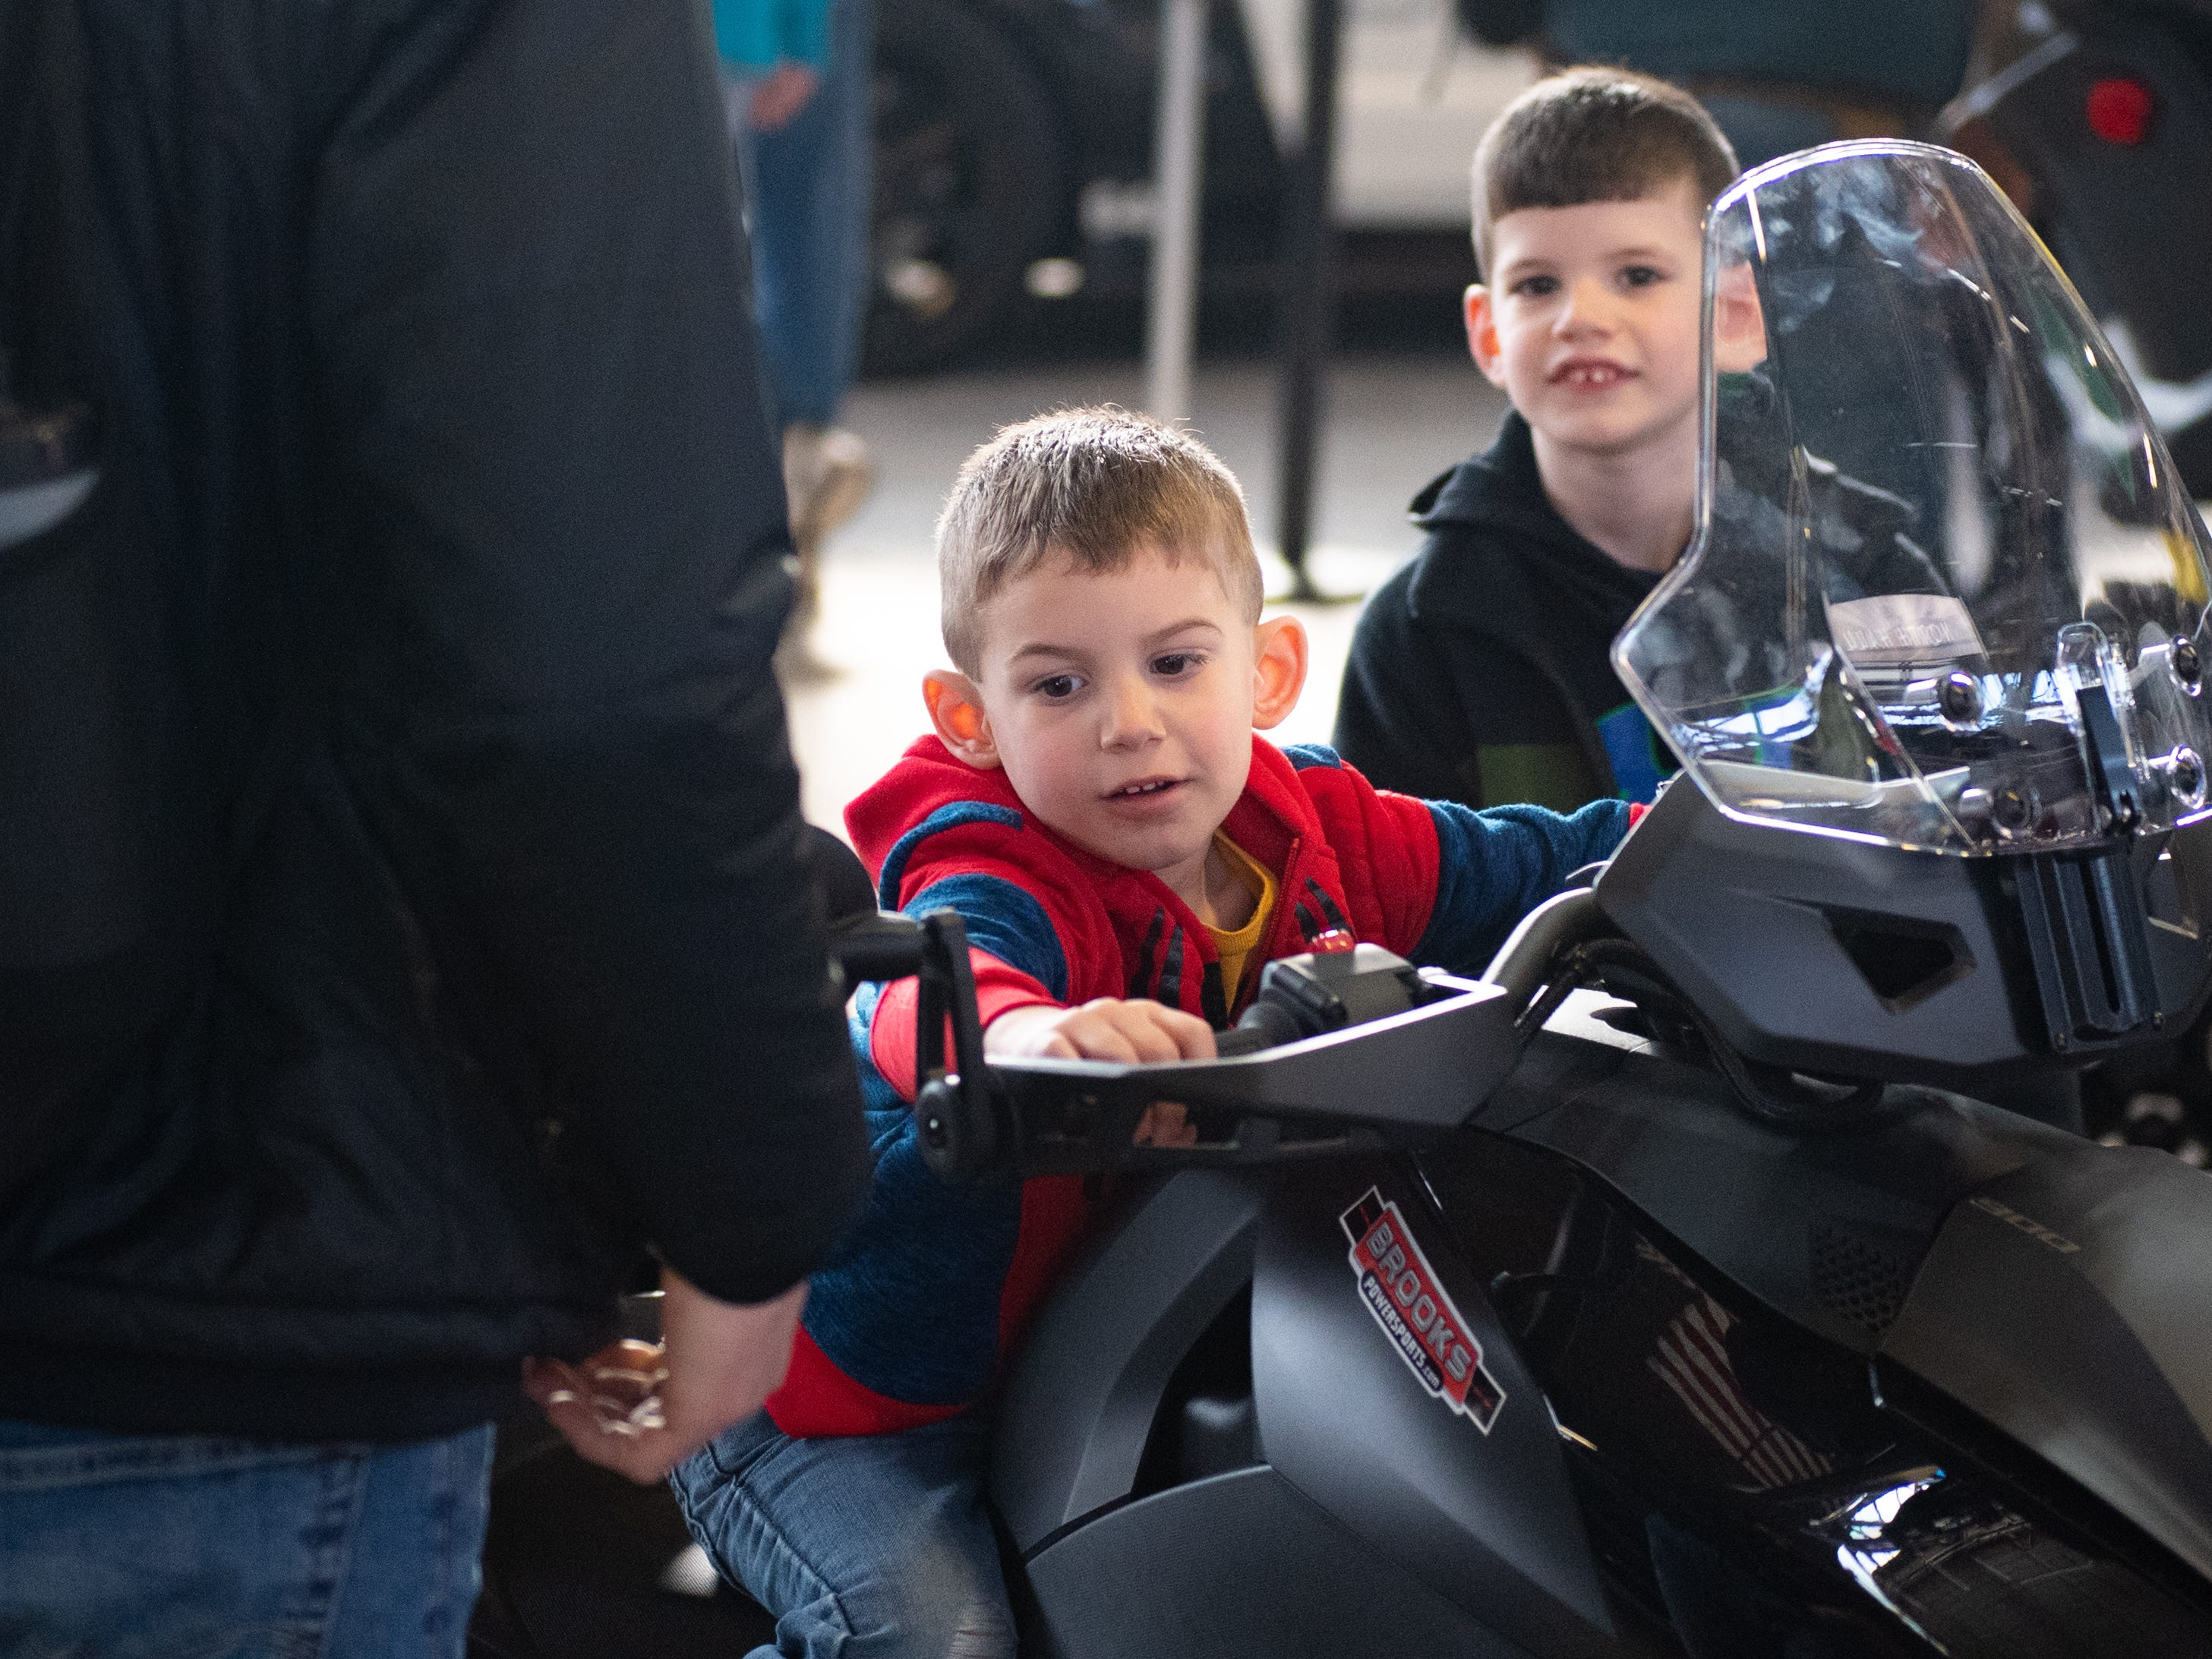 Fionn Garvey takes notes from his father on how to ride a motorcycle during the 2019 Pennsylvania Auto Show, Saturday, January 26, 2019 at the Pennsylvania Farm Show Complex & Expo Center. The auto show continues on Sunday from 10 a.m. to 5 p.m.